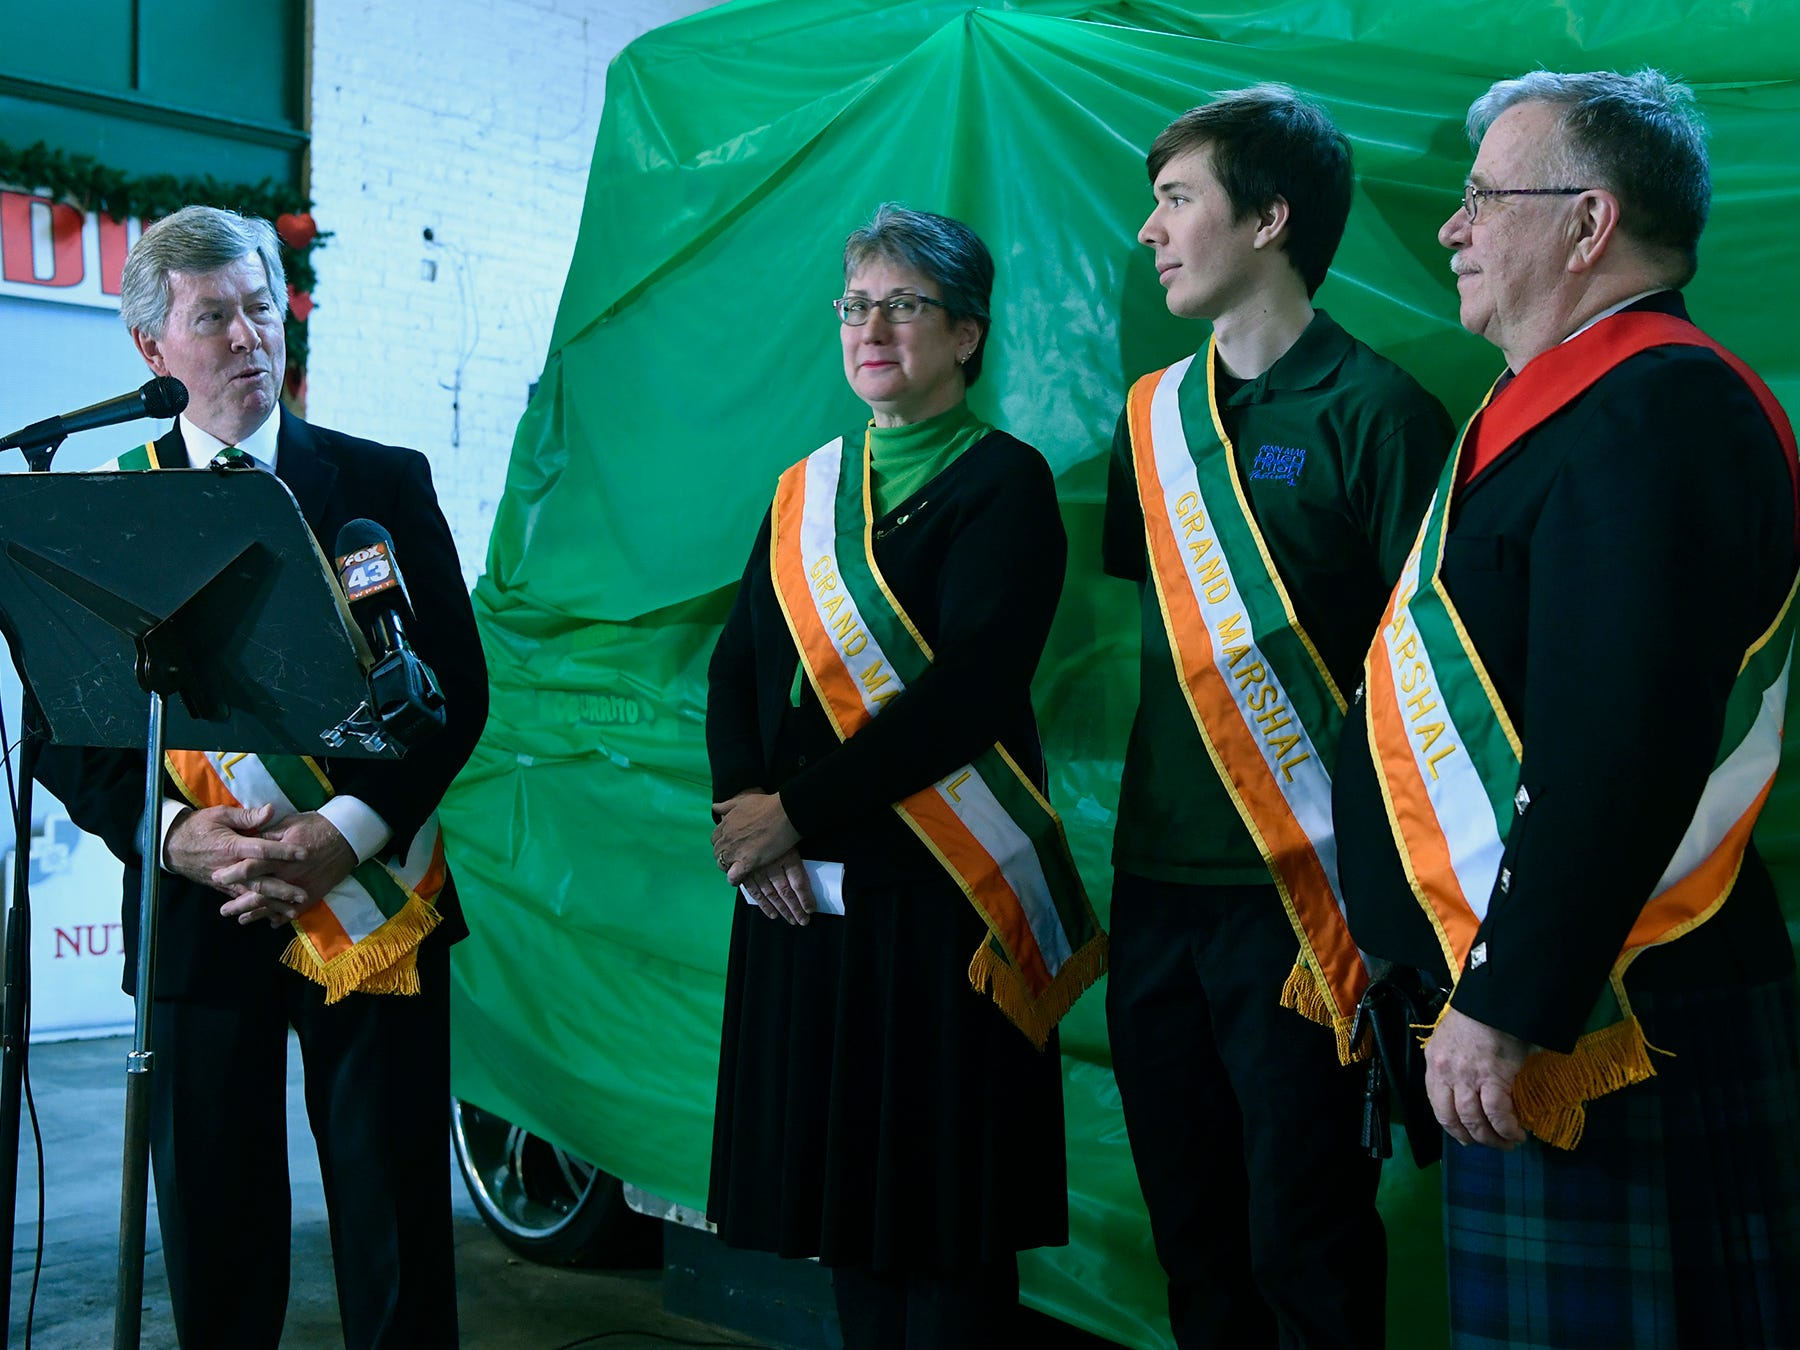 2018 Grand Marshal Dave Kennedy, left, introduces the Yeaple family, Mary, Jay and Rodney, right, as the Grand Marshal family for the 36th Annual York Saint Patrick's Day Parade, Wednesday, January 9, 2019. The parade will be held Saturday, March 16. John A. Pavoncello photo